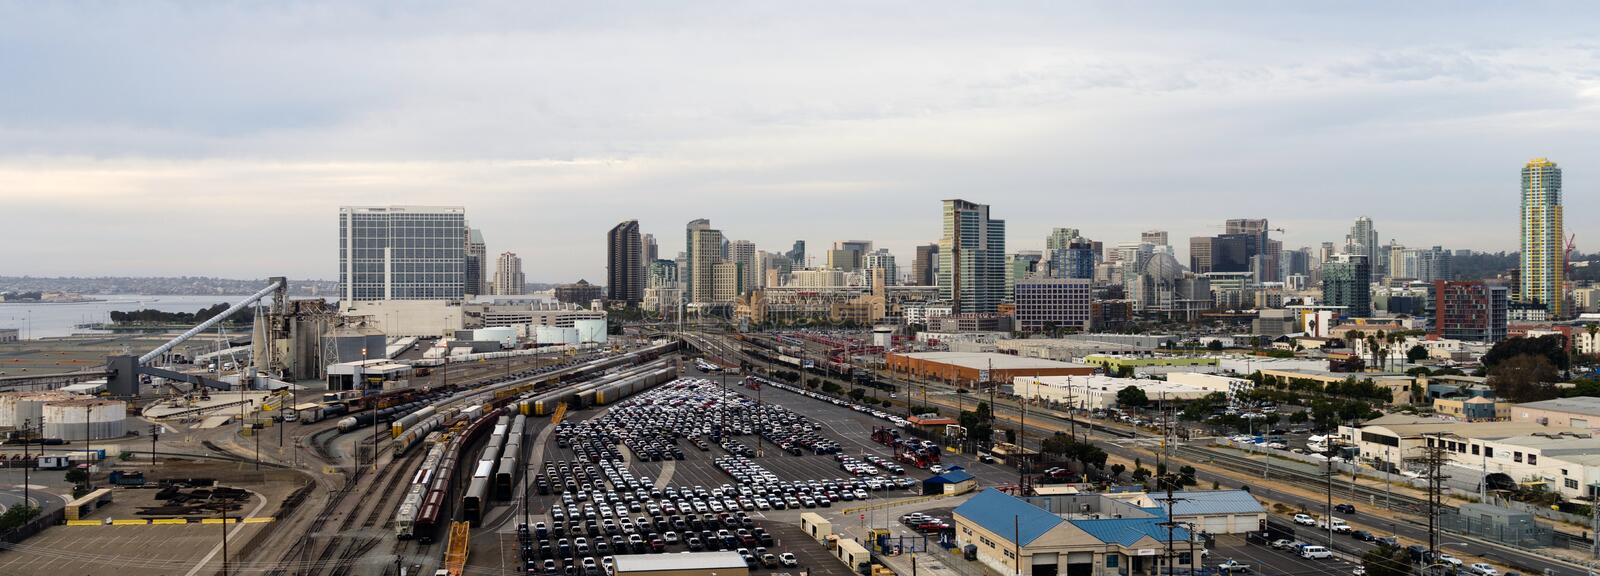 San Diego California Downtown City Skyline Including Port and Railroad Yard. A view from the Coronado Bridge looking north into San Diego California royalty free stock photography